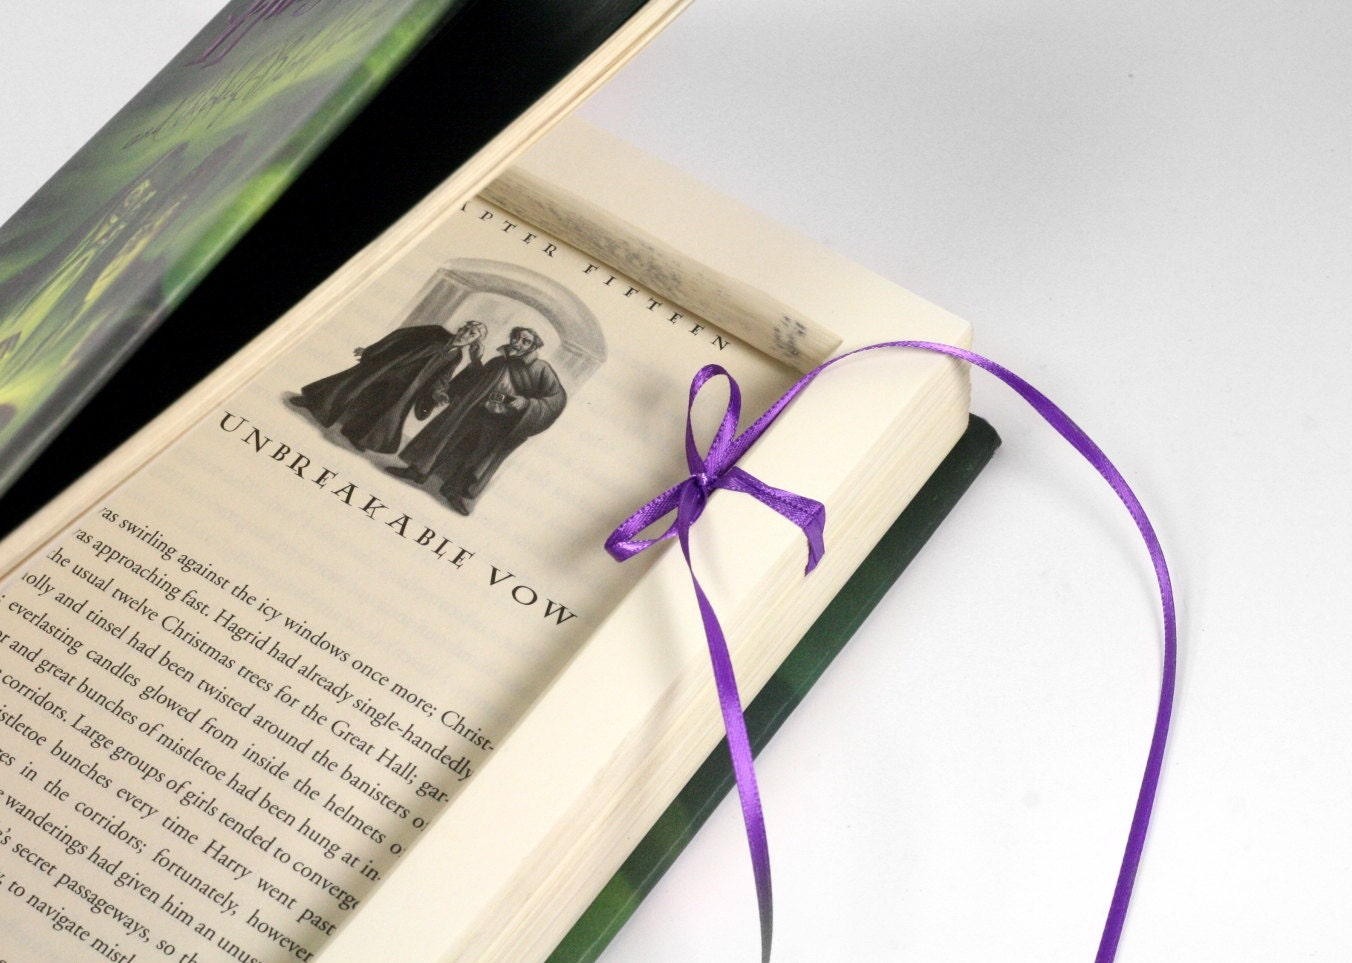 harry potter unbreakable vow cut hollow harry potter wedding bands Ring Proposal Engagement Wedding Idea Harry Potter Wedding zoom